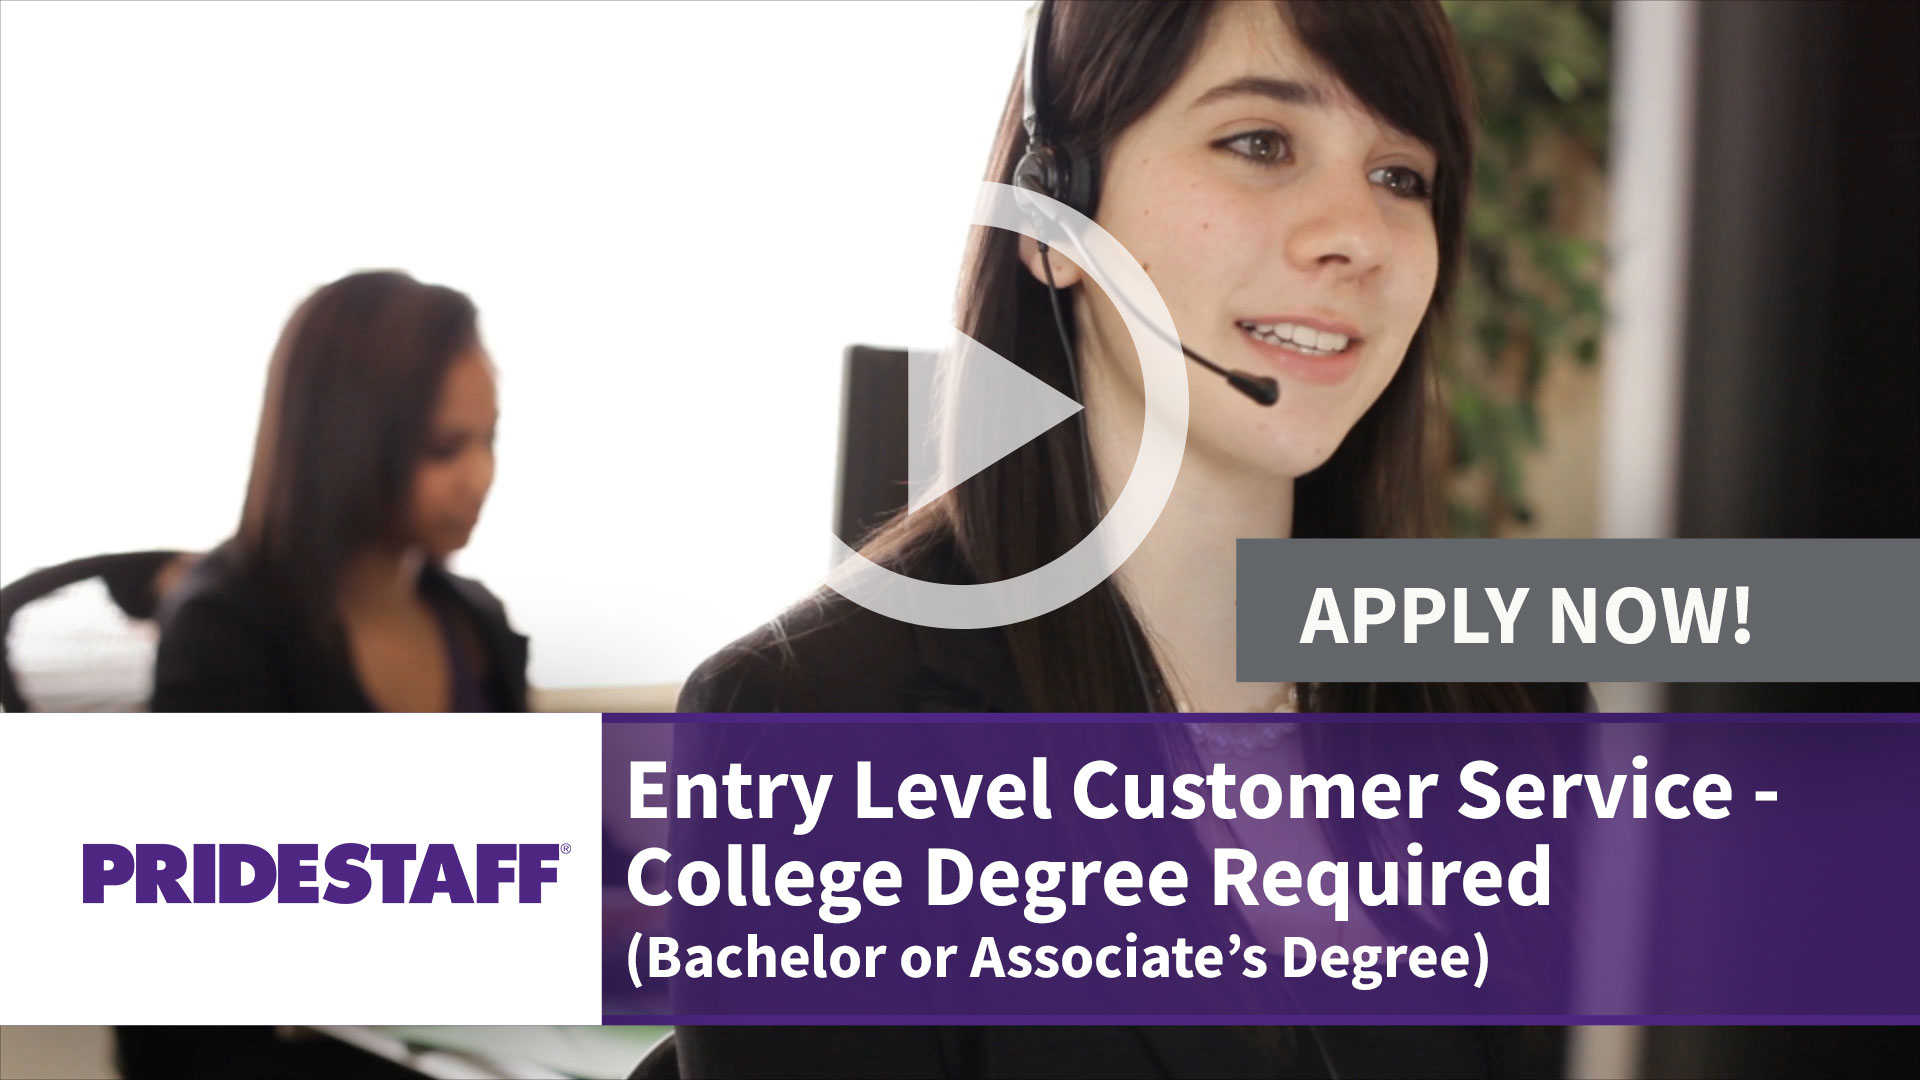 Watch our careers video for available job opening Entry Level Customer Service - College Degree Required - Bachelor or Associates Degree  in Irving, Texas